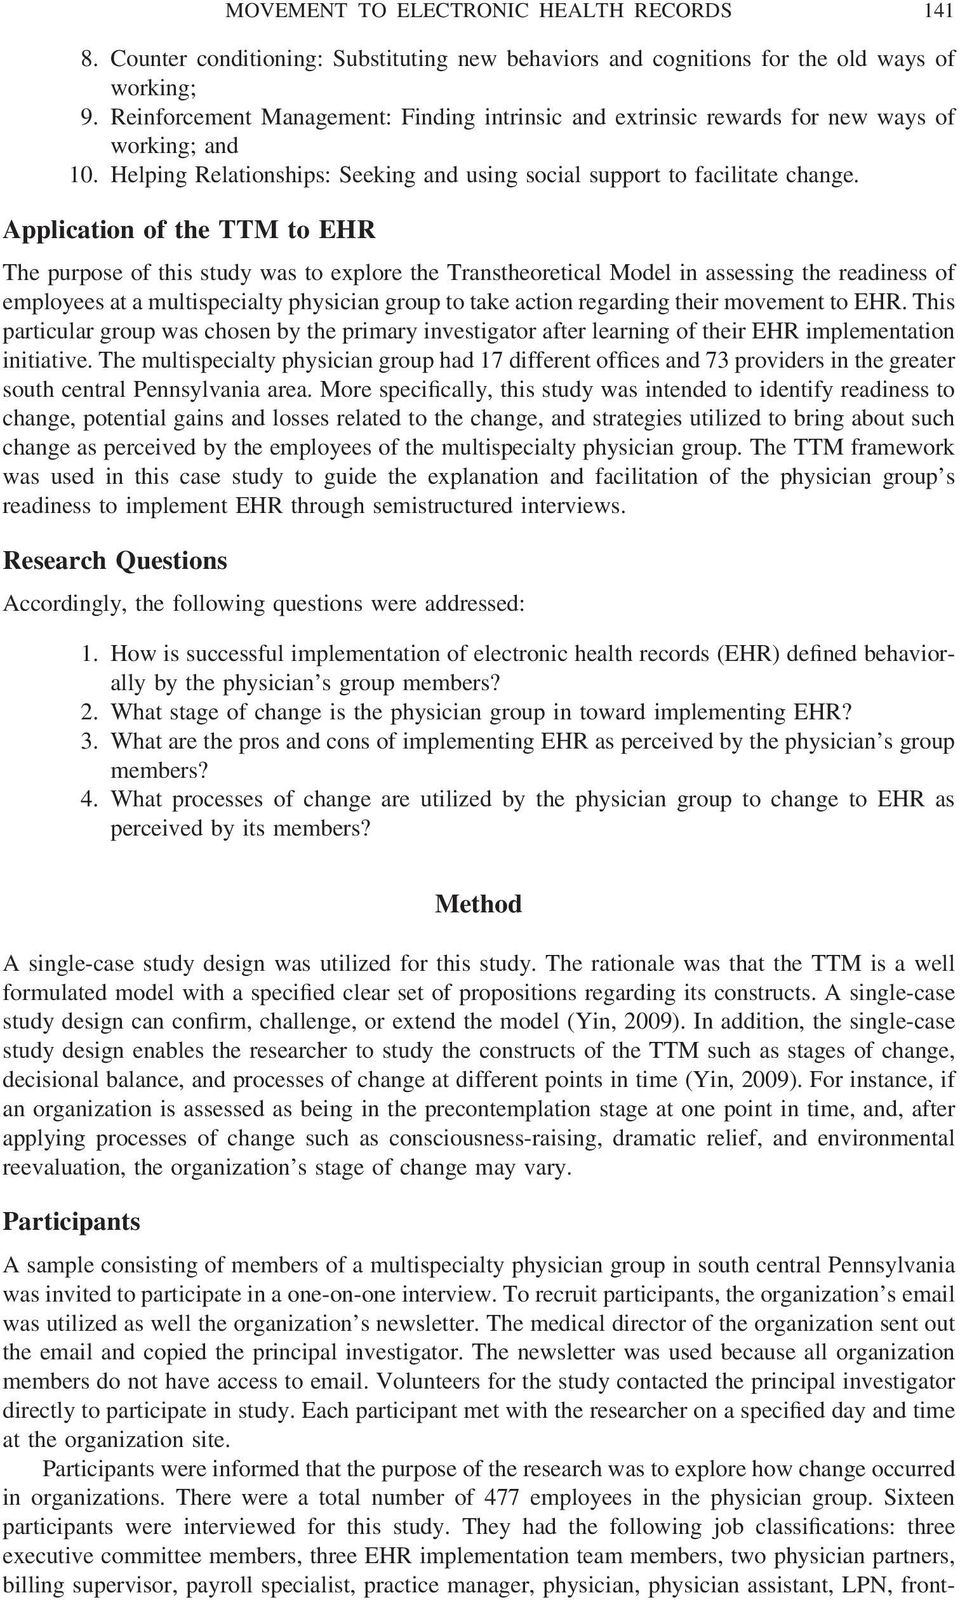 Application of the TTM to EHR The purpose of this study was to explore the Transtheoretical Model in assessing the readiness of employees at a multispecialty physician group to take action regarding